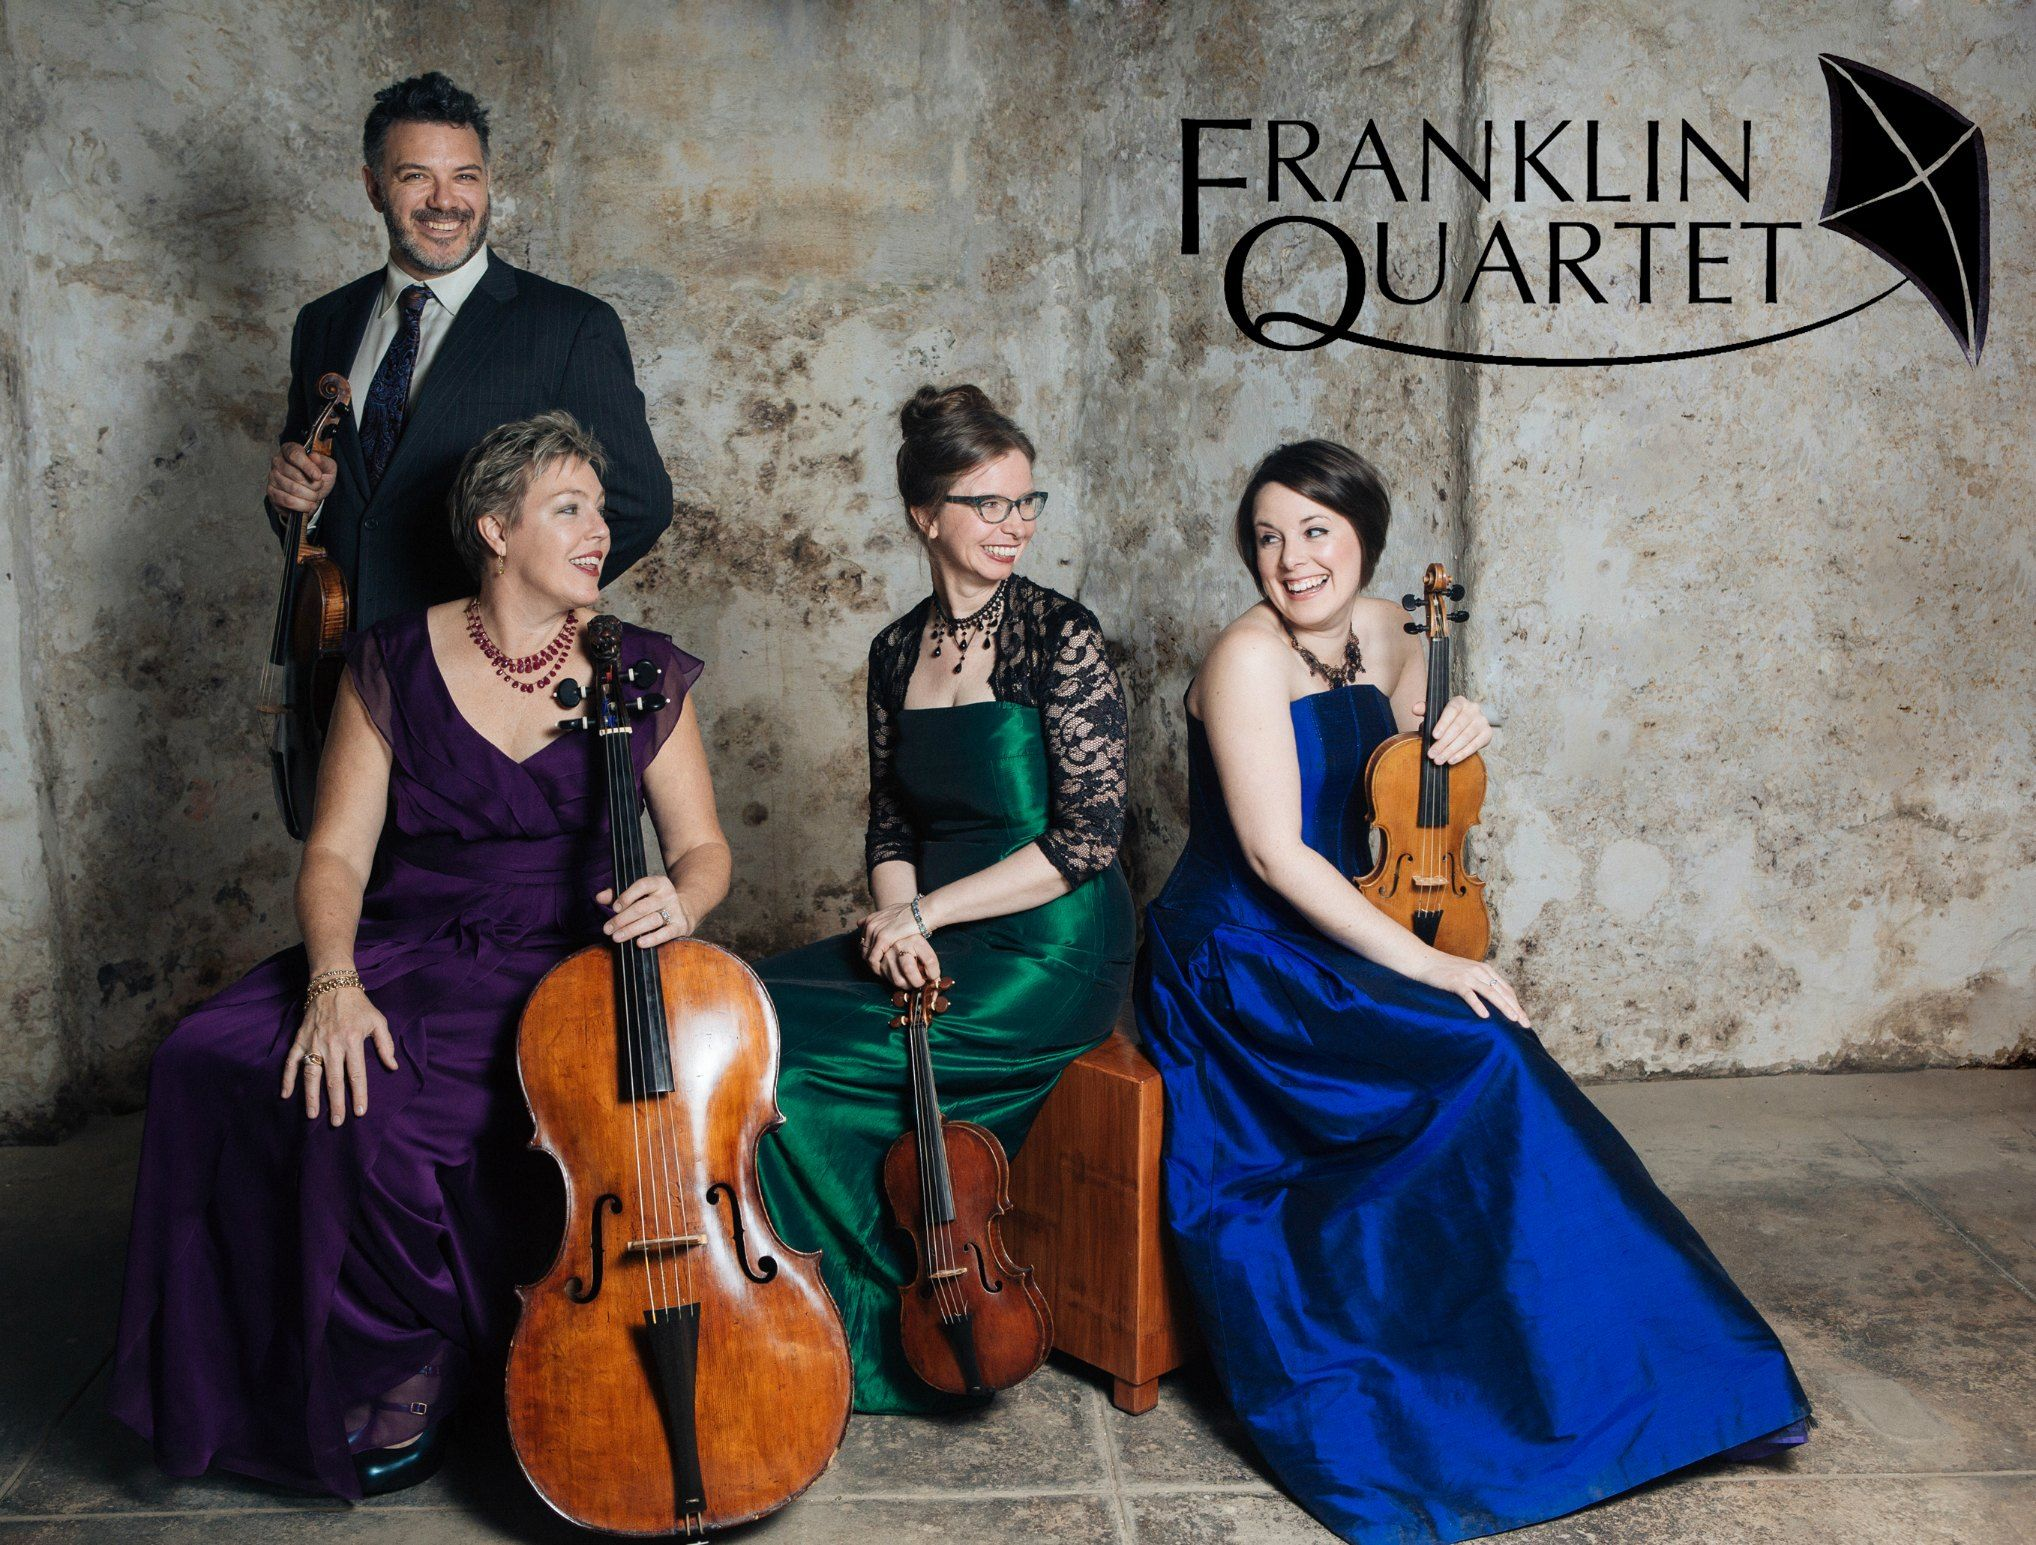 Franklin Quartet